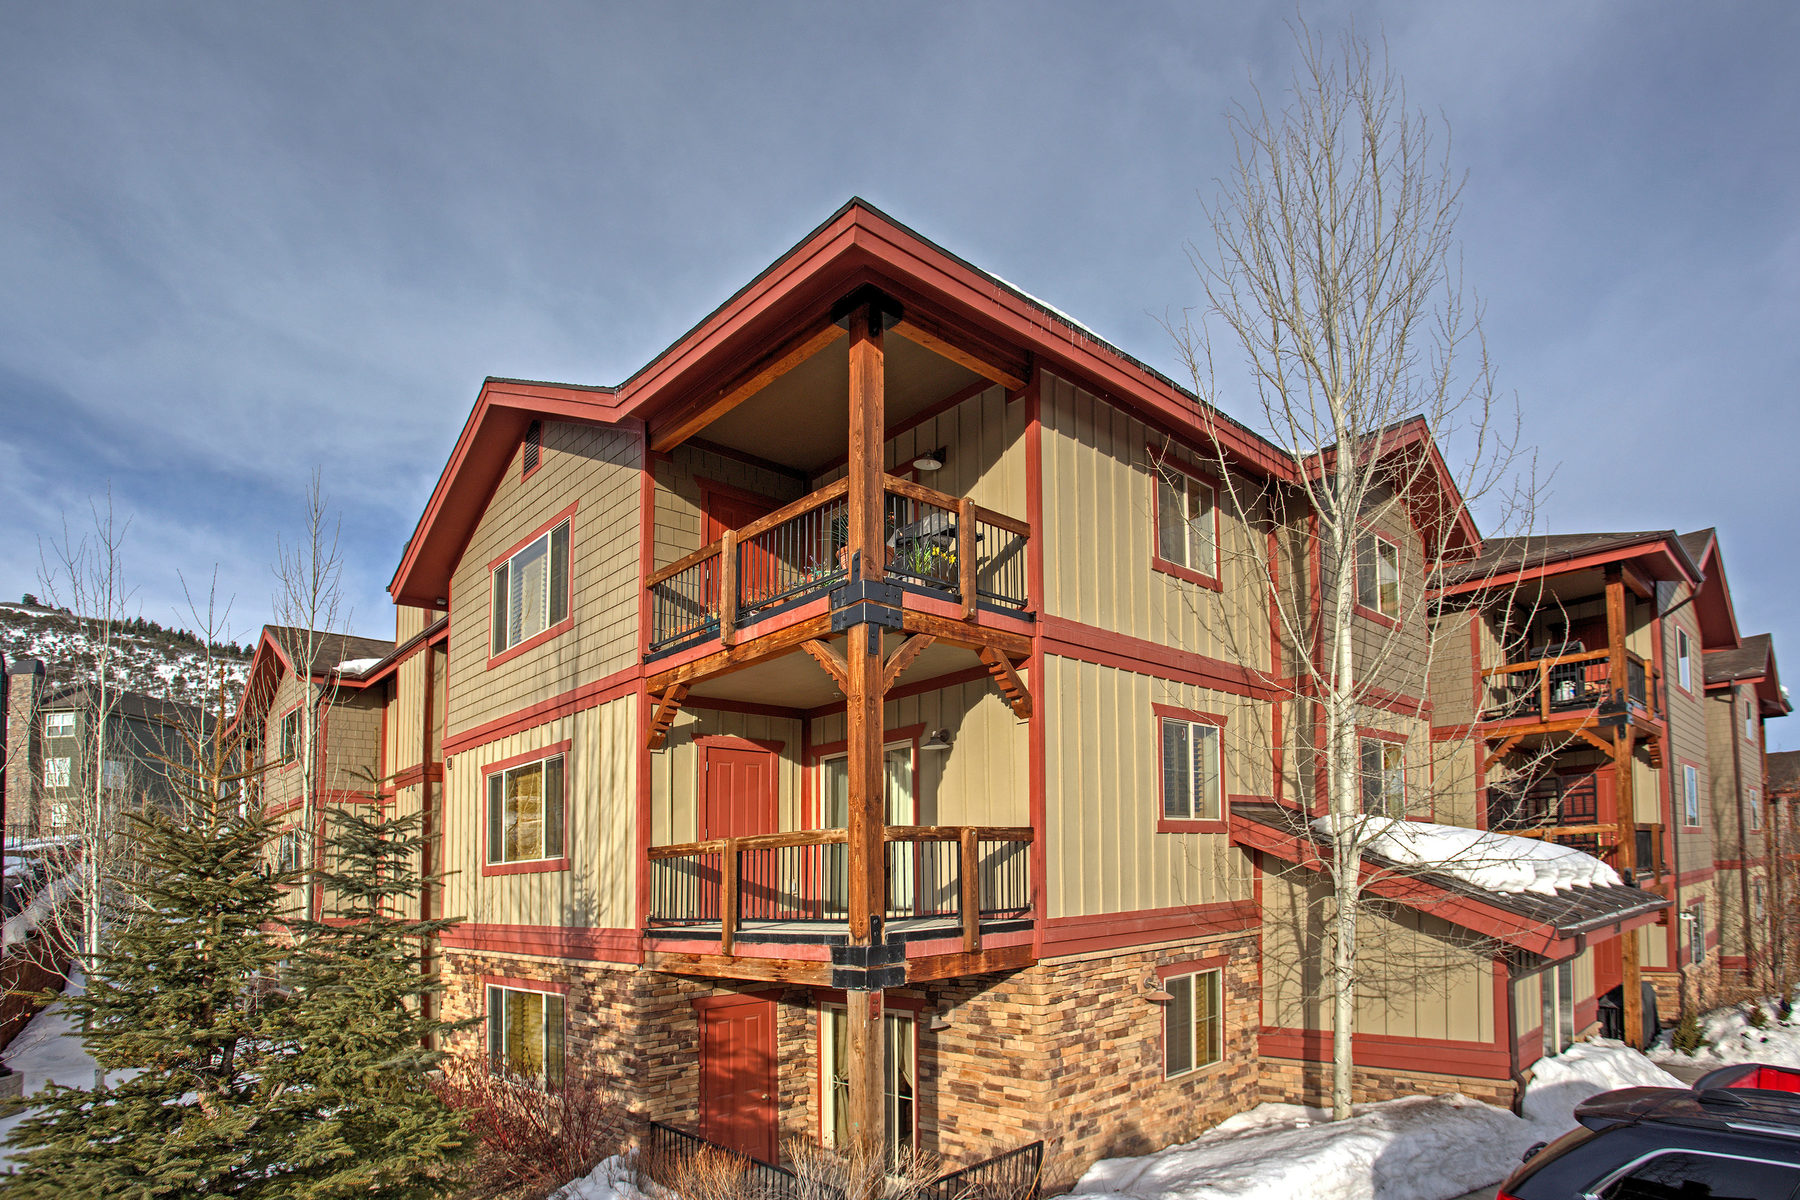 Condominium for Sale at Your Chance to Own in Park City 5501 N Lillehammer Ln #4204 Park City, Utah, 84098 United States